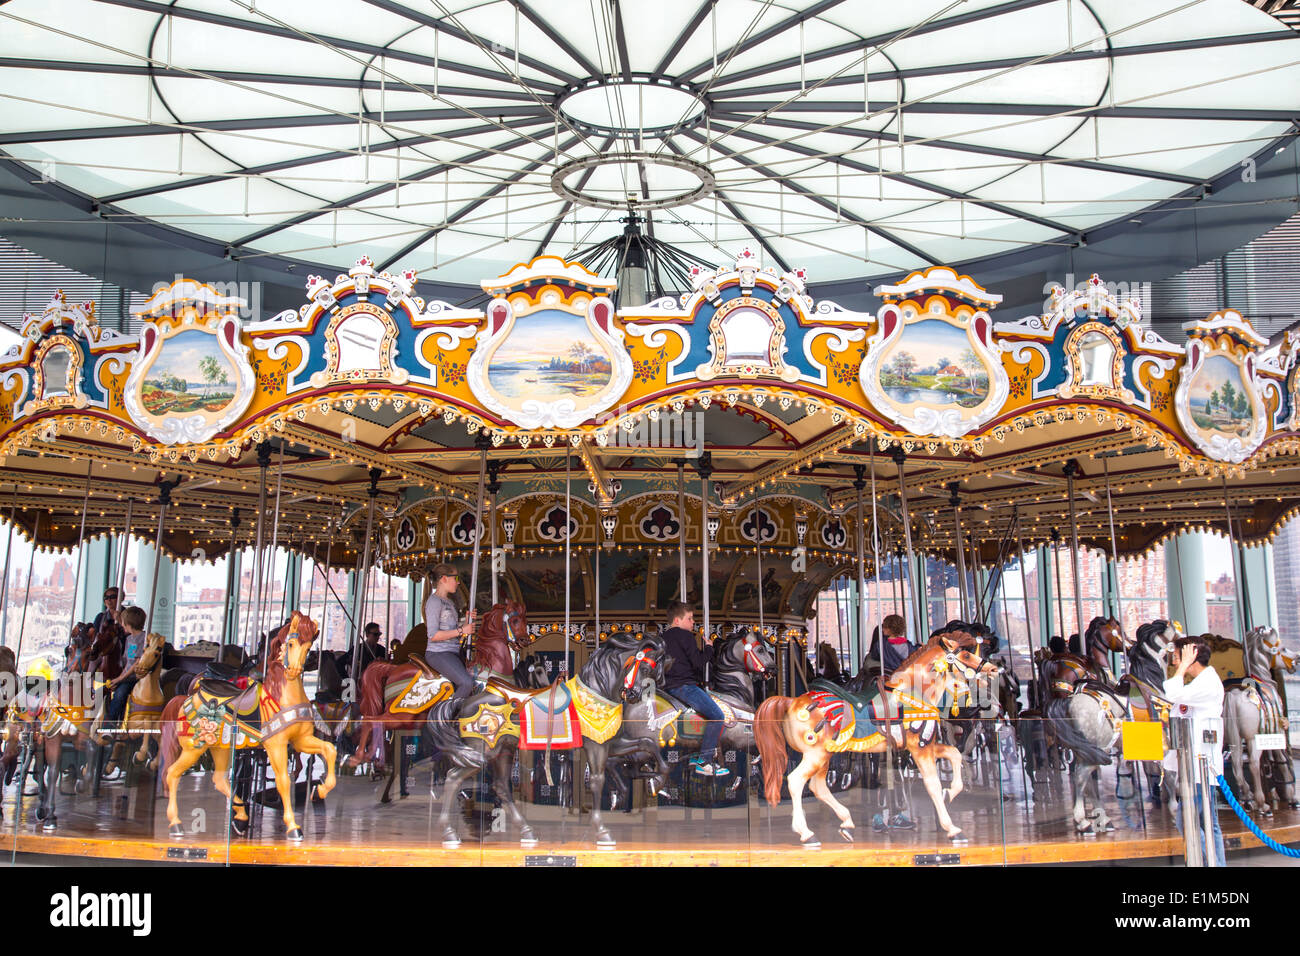 Jane's Carousel, Brooklyn Bridge Park, NYC - Stock Image